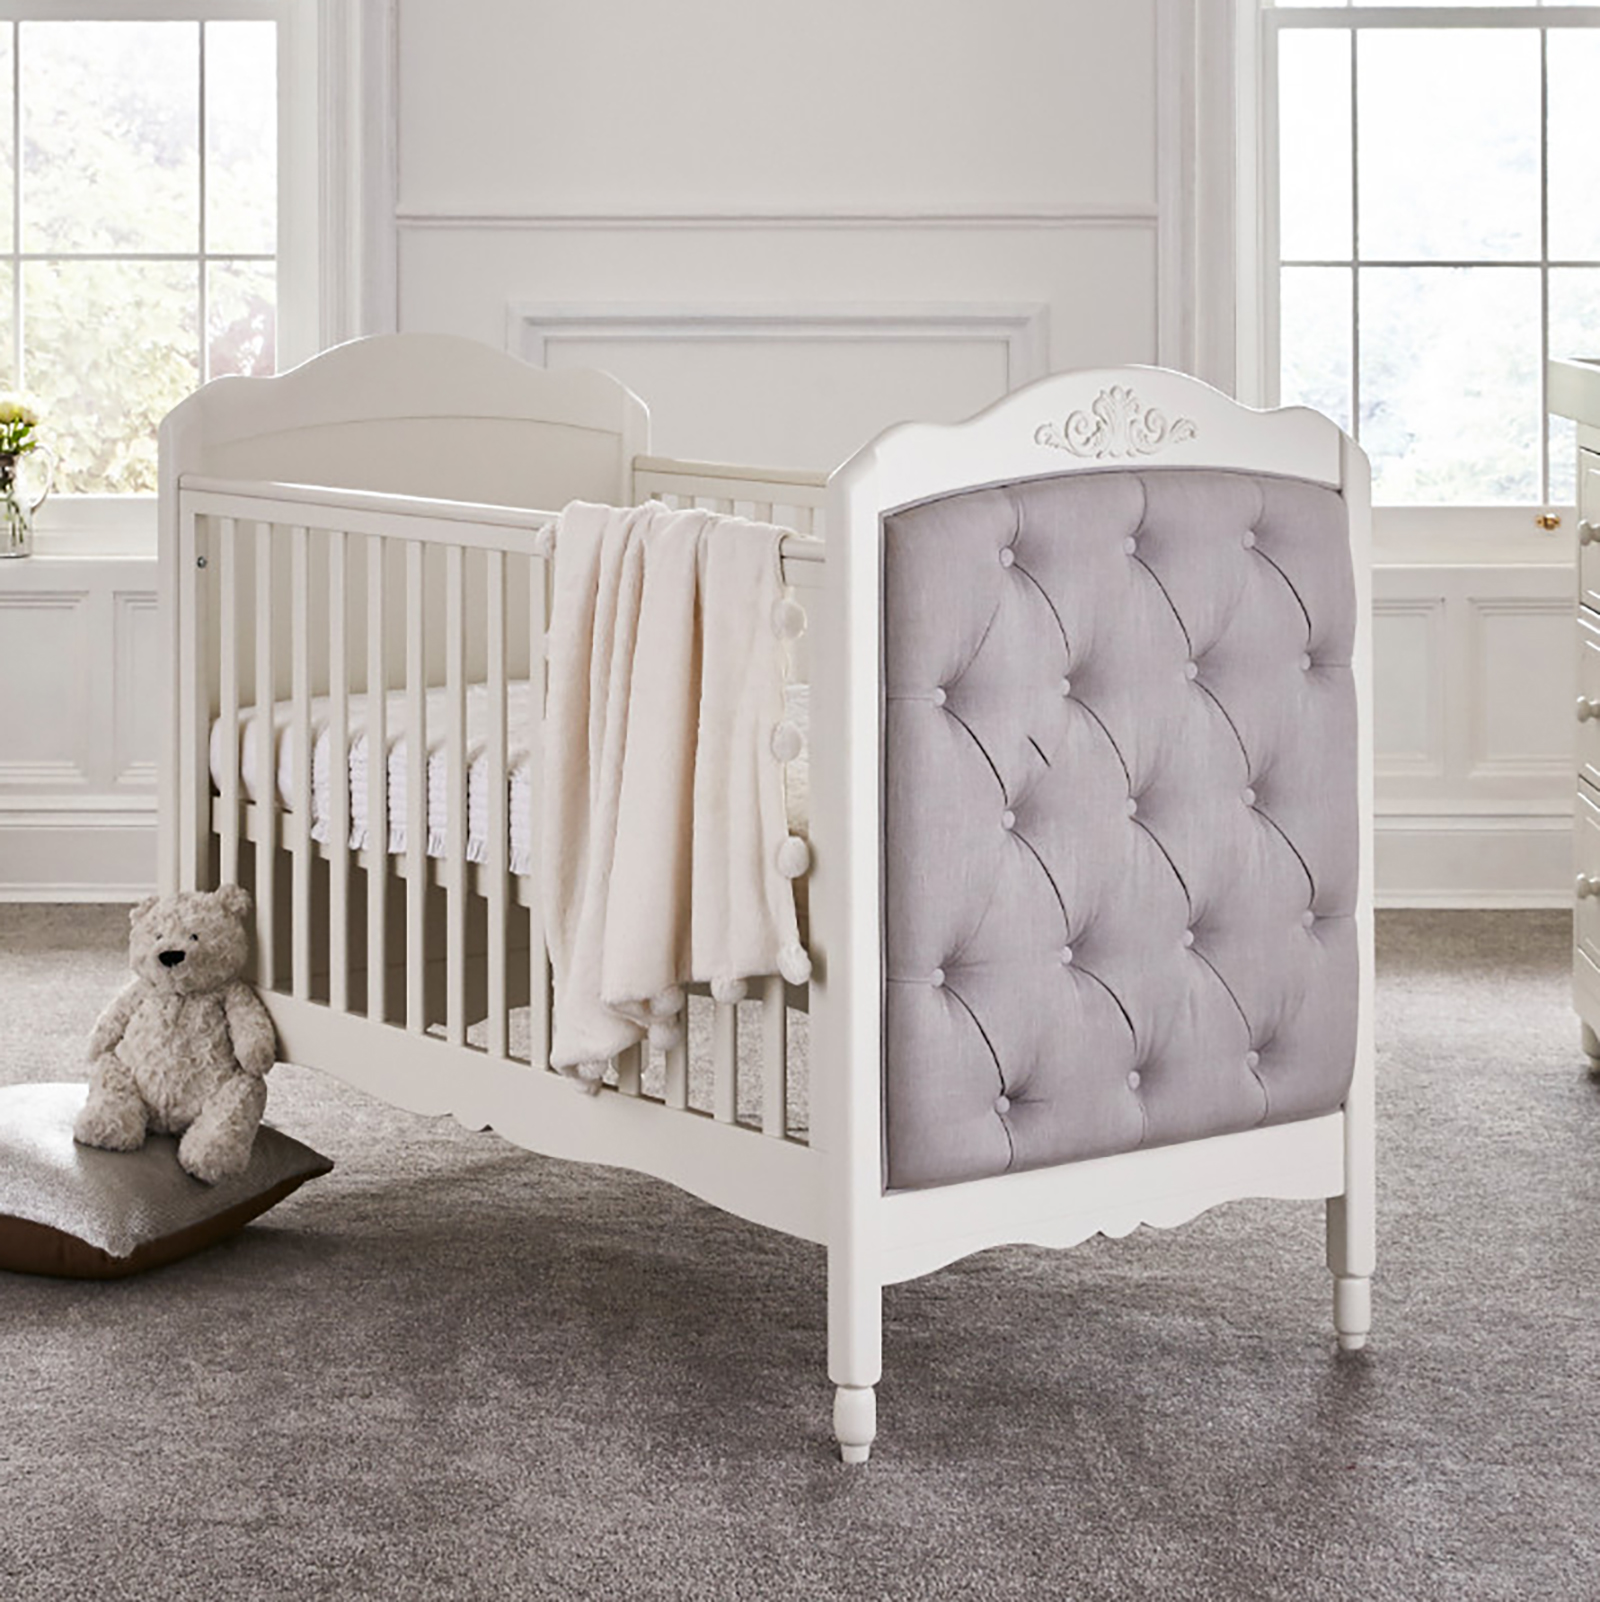 Mee-Go Epernay Cot Bed - White